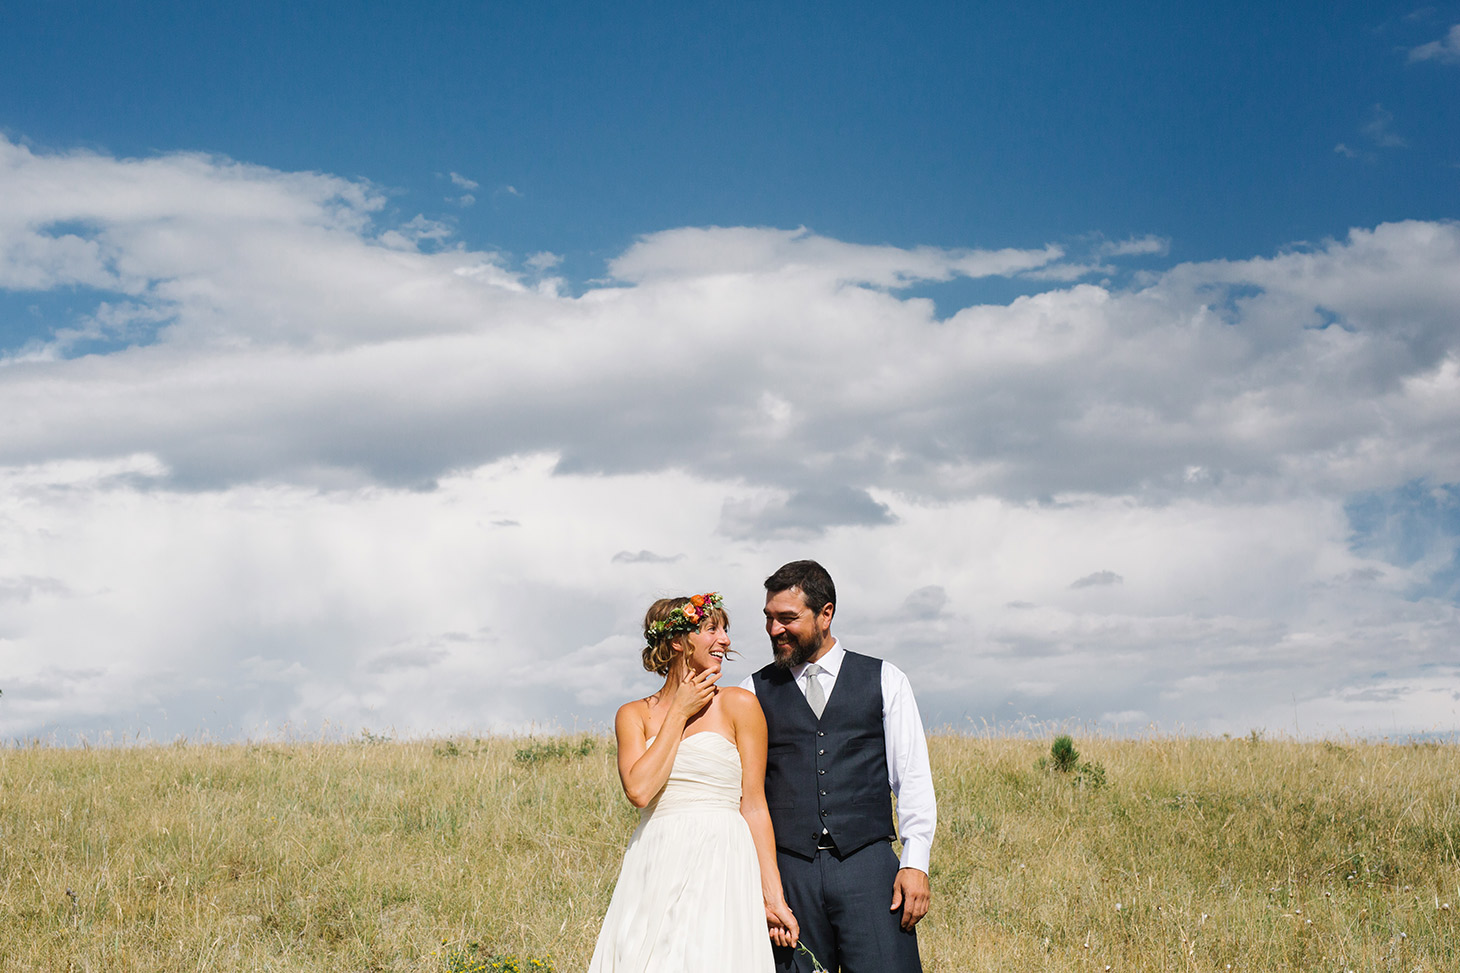 Megan-Newton-Photography-Best-Wedding-Photos-2015-076